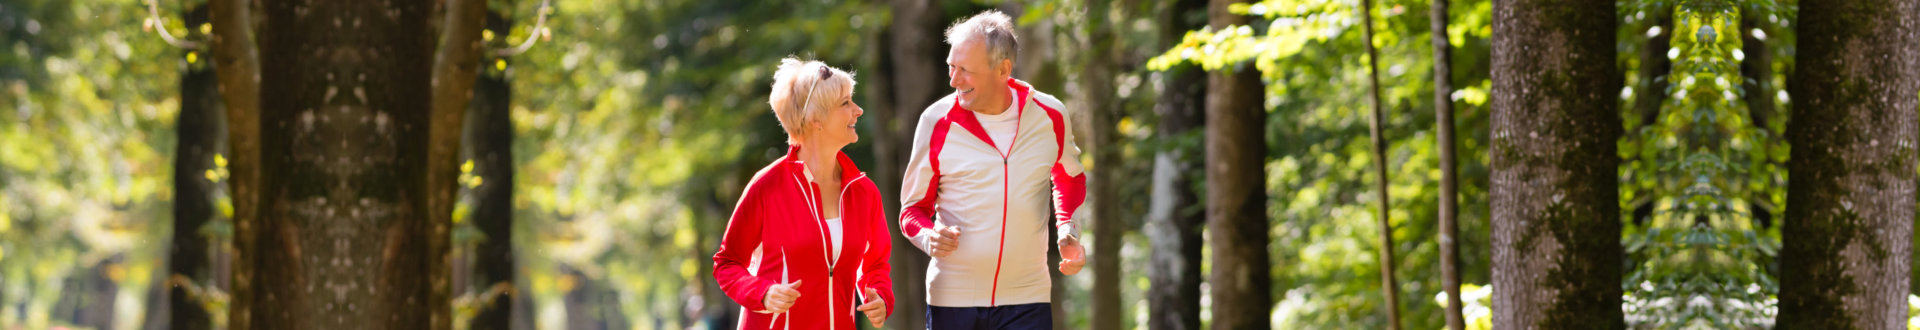 senior couple on jogging